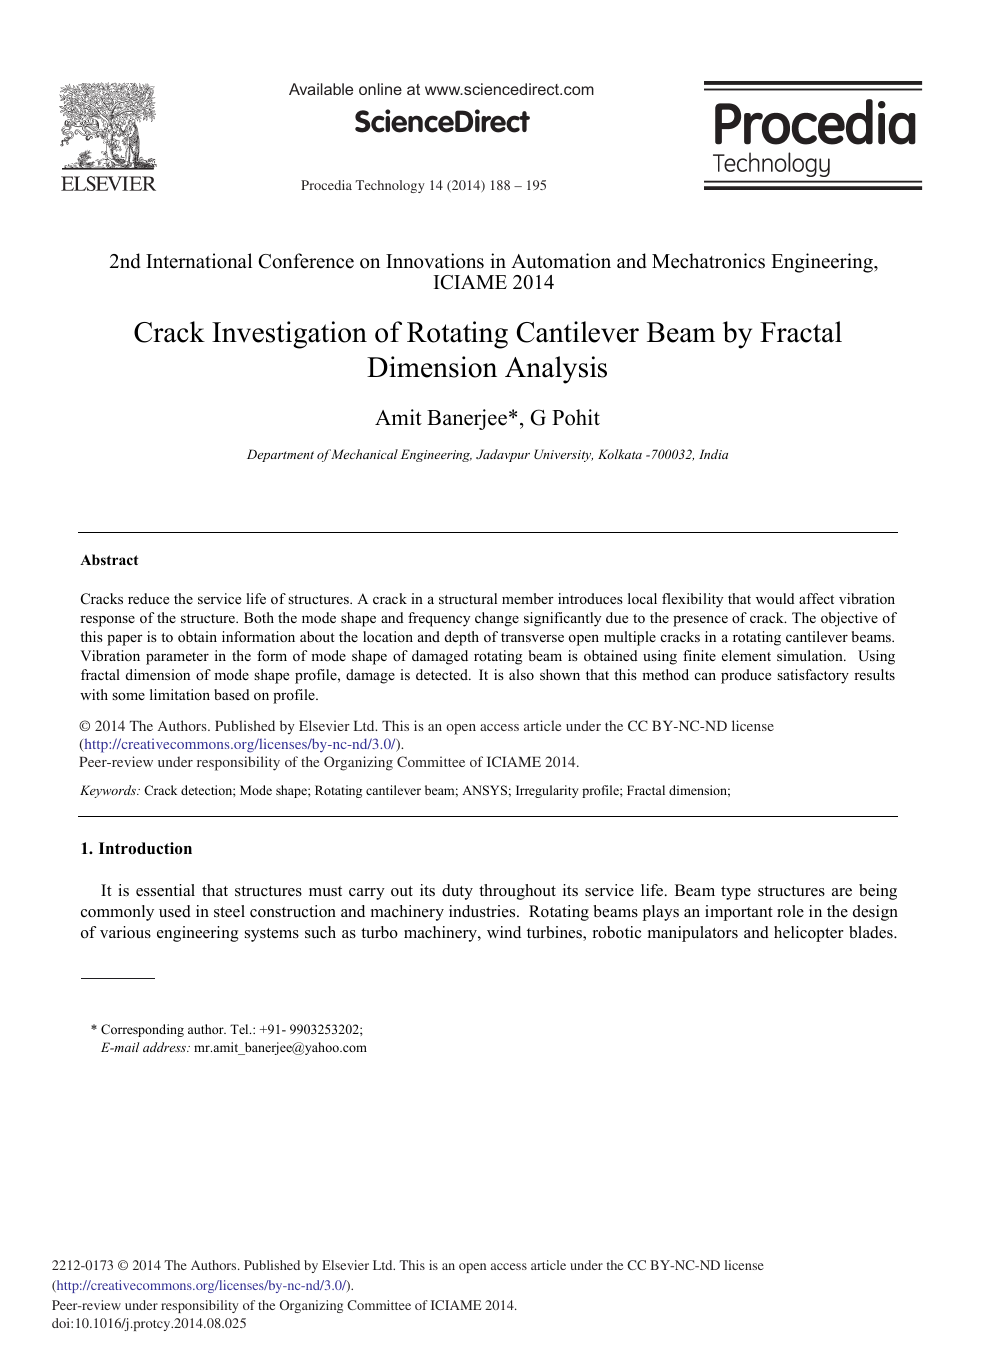 Crack Investigation of Rotating Cantilever Beam by Fractal Dimension